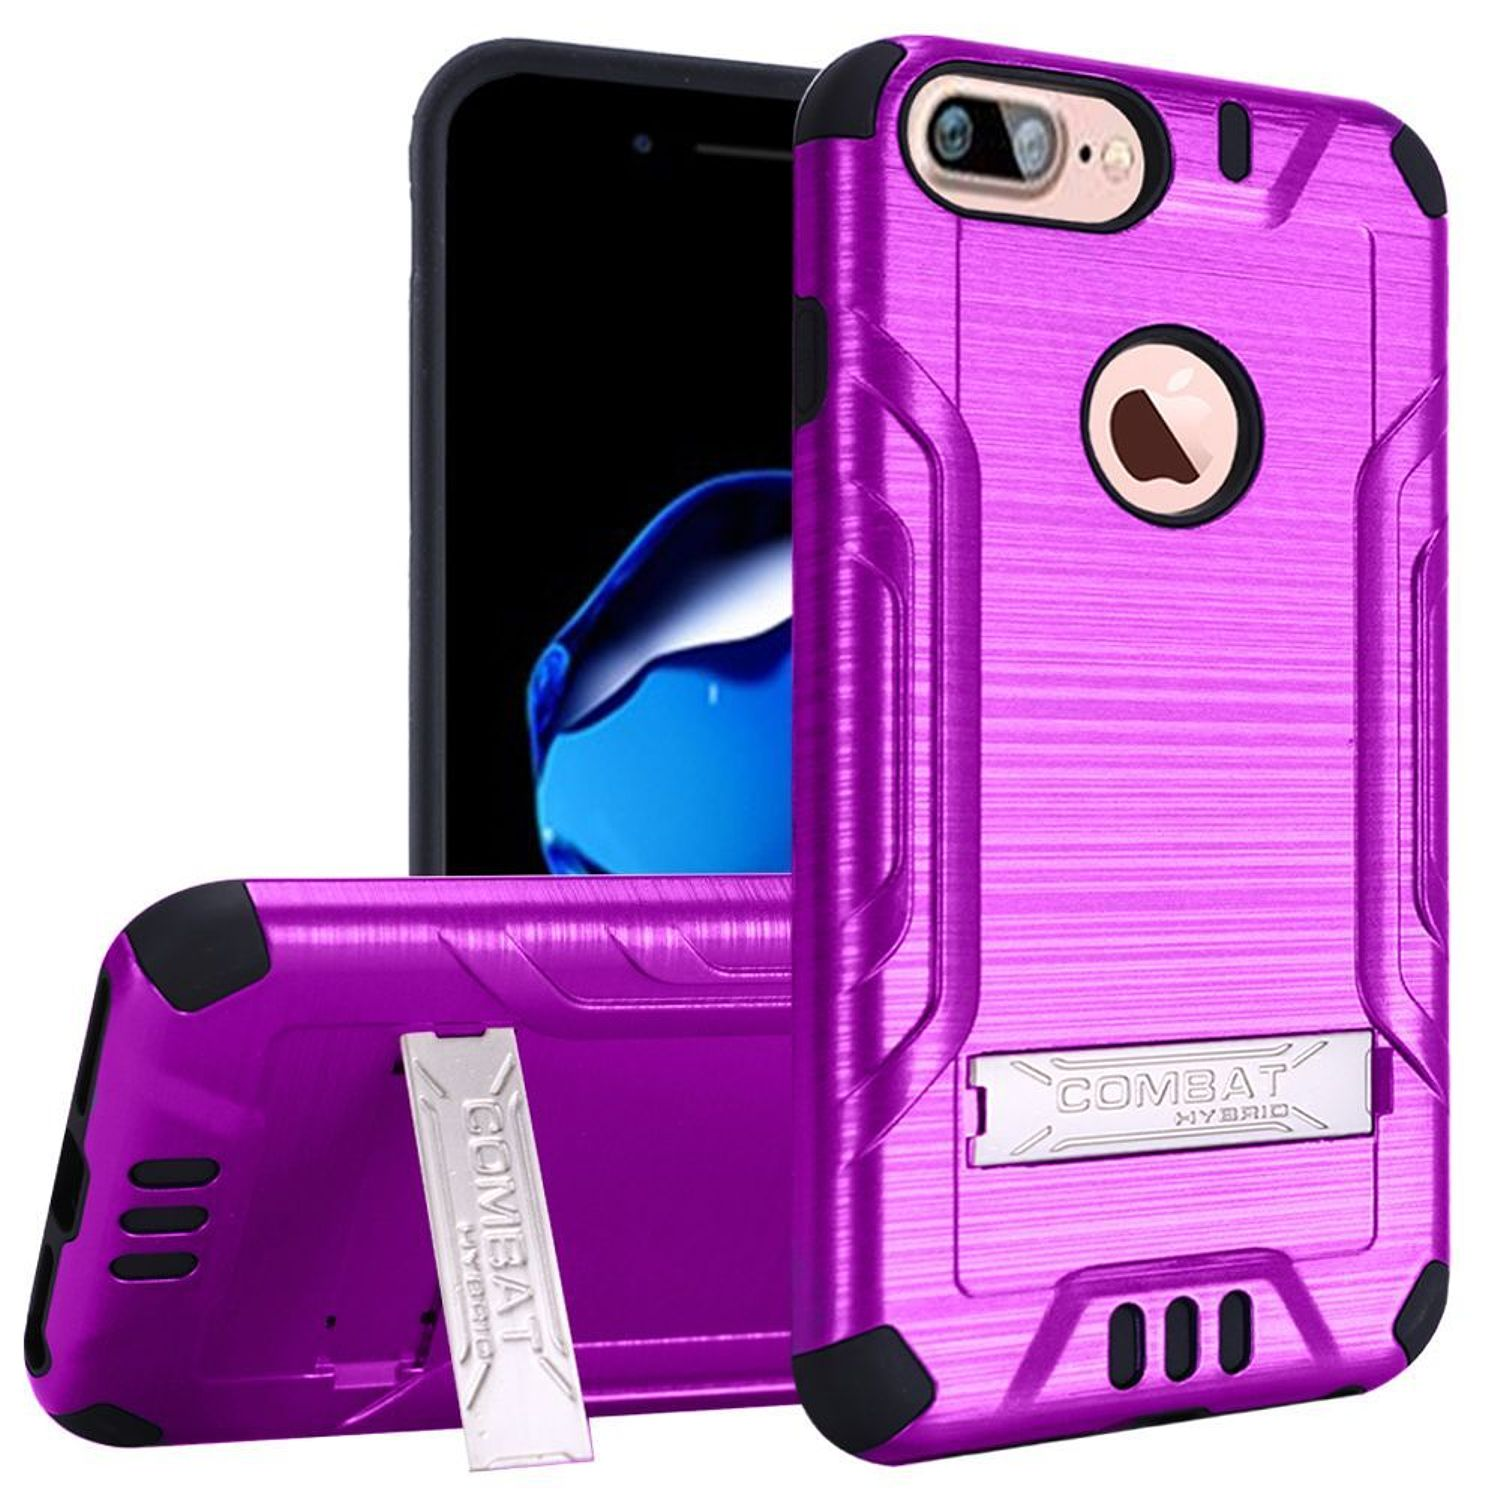 iPhone 7 Plus Case, by Insten Dual Layer [Shock Absorbing] Protection Hybrid Stand Plastic/TPU Rubber Case Cover for Apple iPhone 7 Plus, Purple/Black